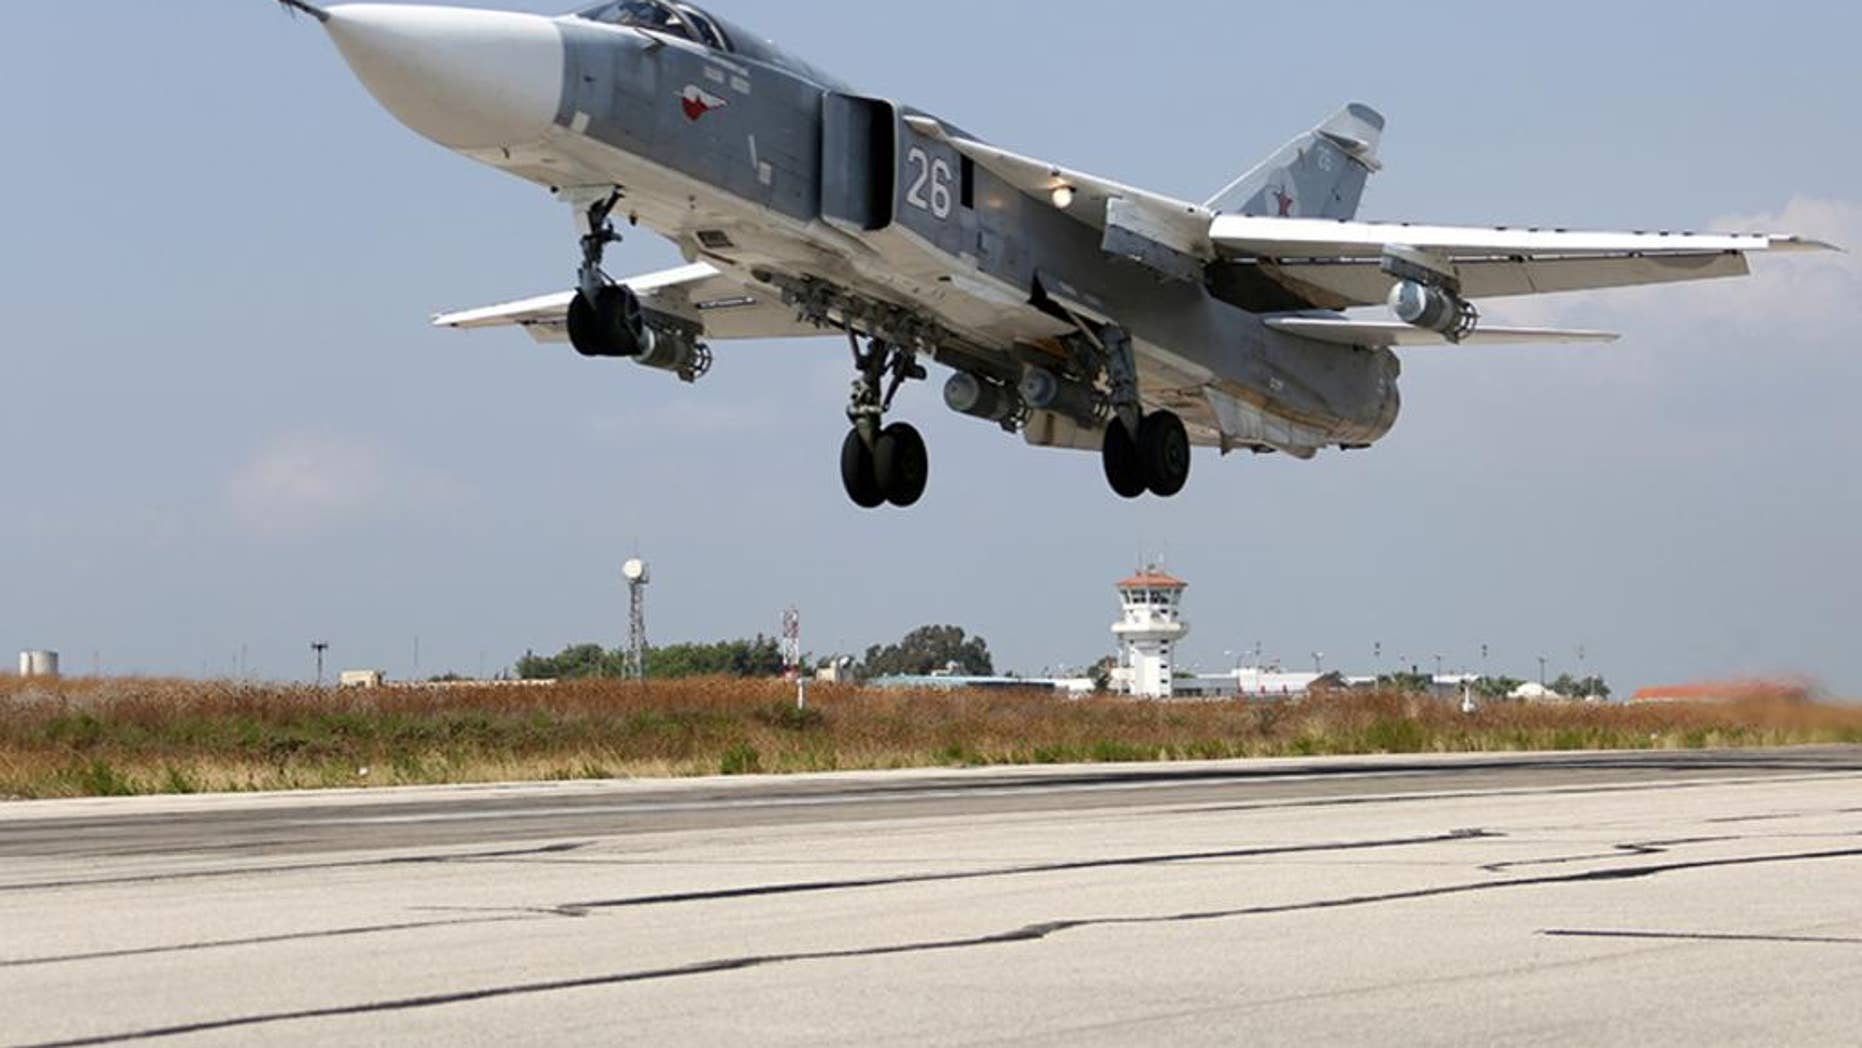 In this photo taken from Russian Defense Ministry official web site on Tuesday, Oct. 6, 2015, a Russian  SU-24M jet fighter takes off from an airbase Hmeimim in Syria. A spokeswoman for the Russian foreign ministry has rejected claims that Russia in its airstrikes in Syria is targeting civilians or opposition forces. (Russian Defense Ministry Press Service via AP)